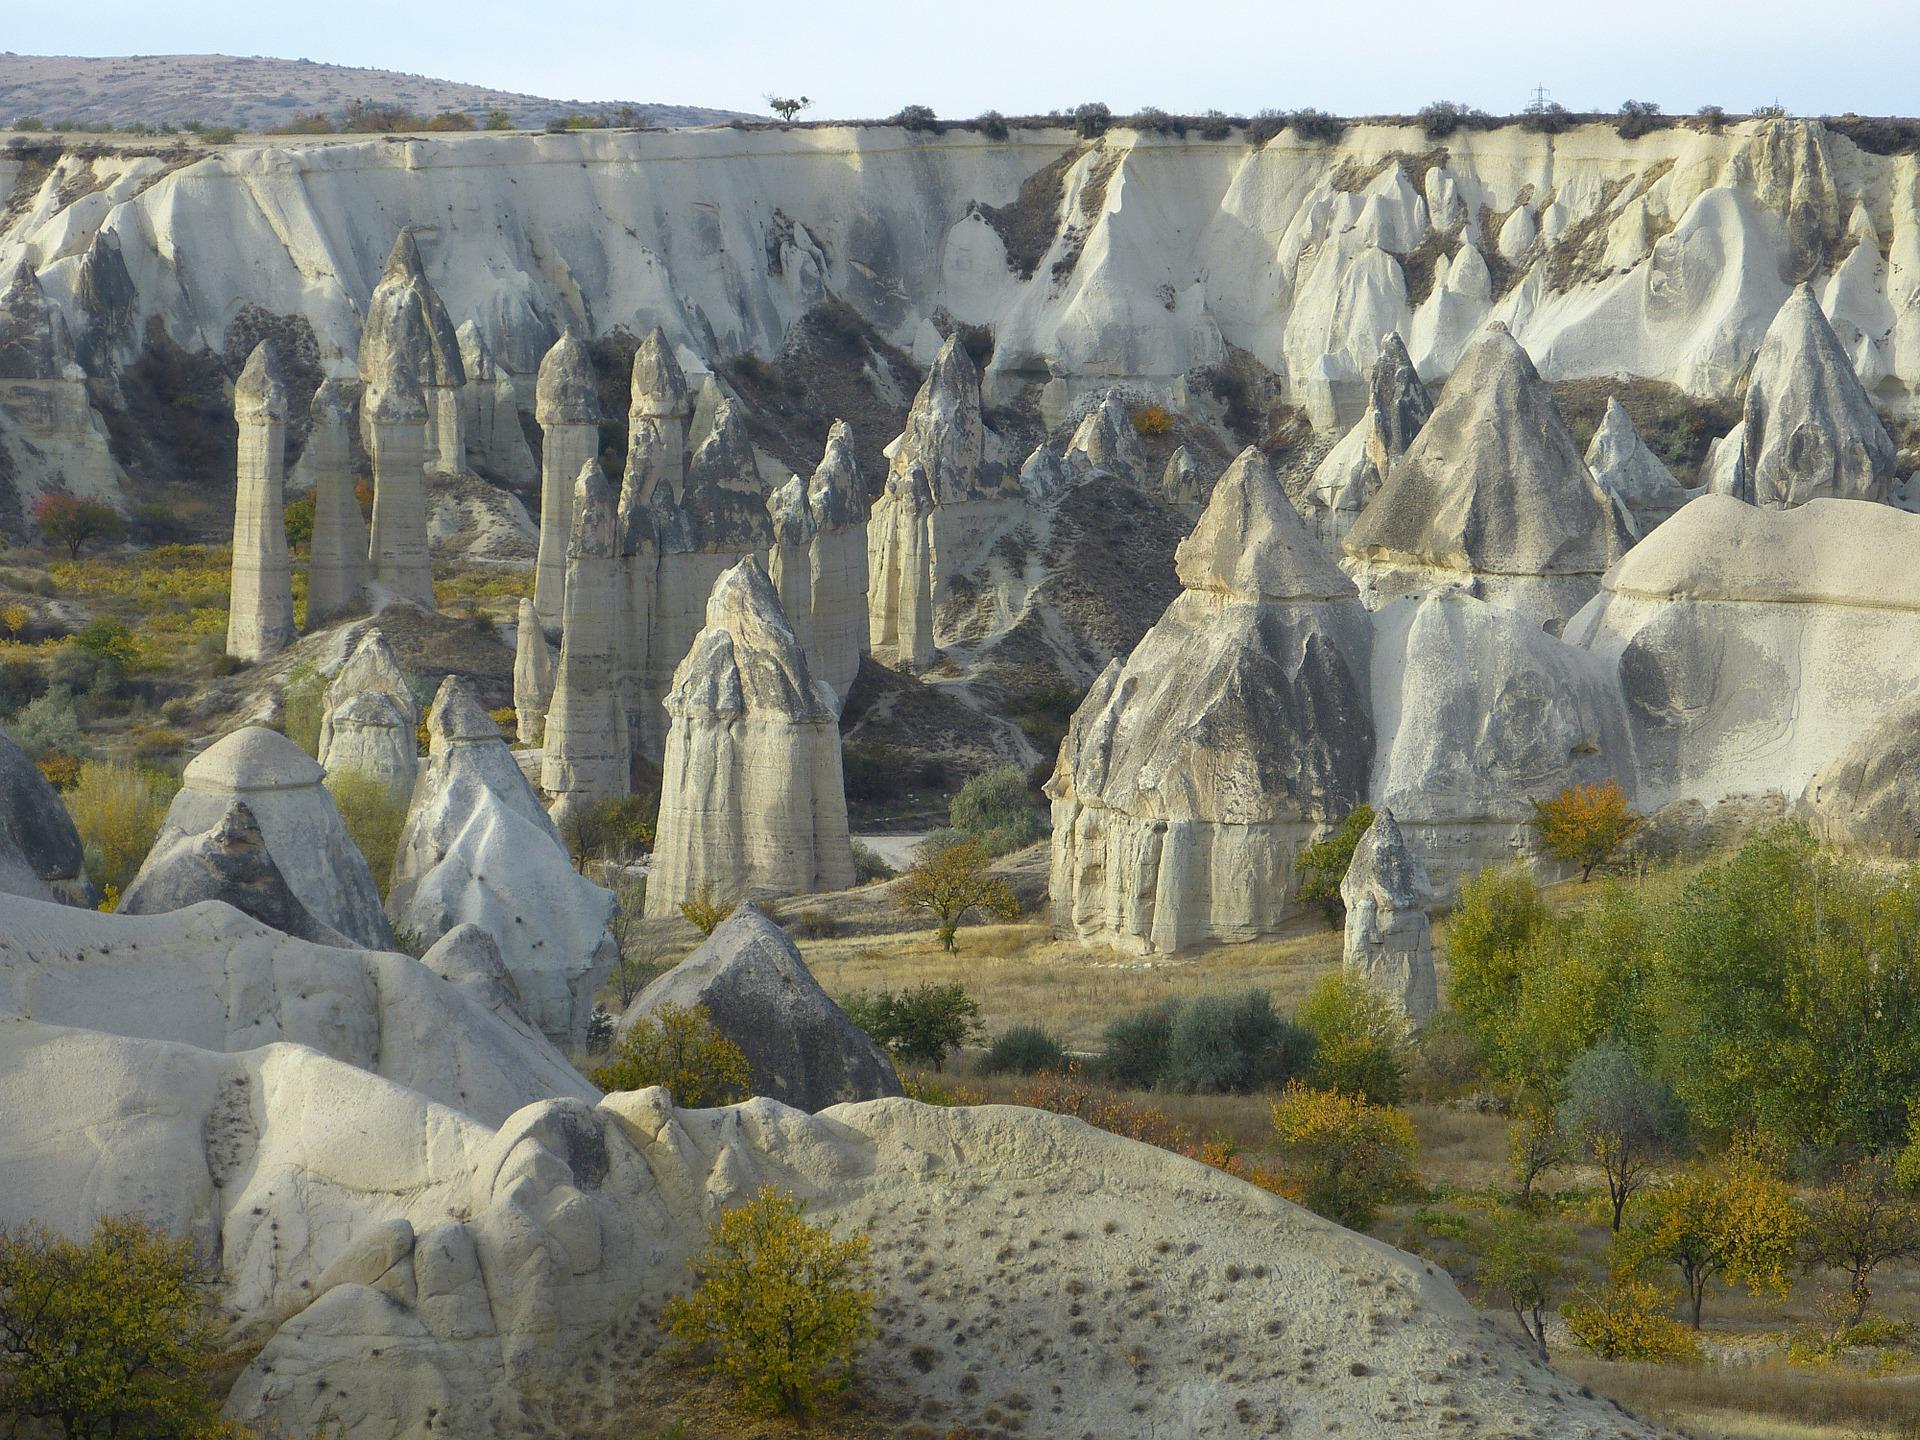 De legenden over de feeenschoorstenen in Cappadocie